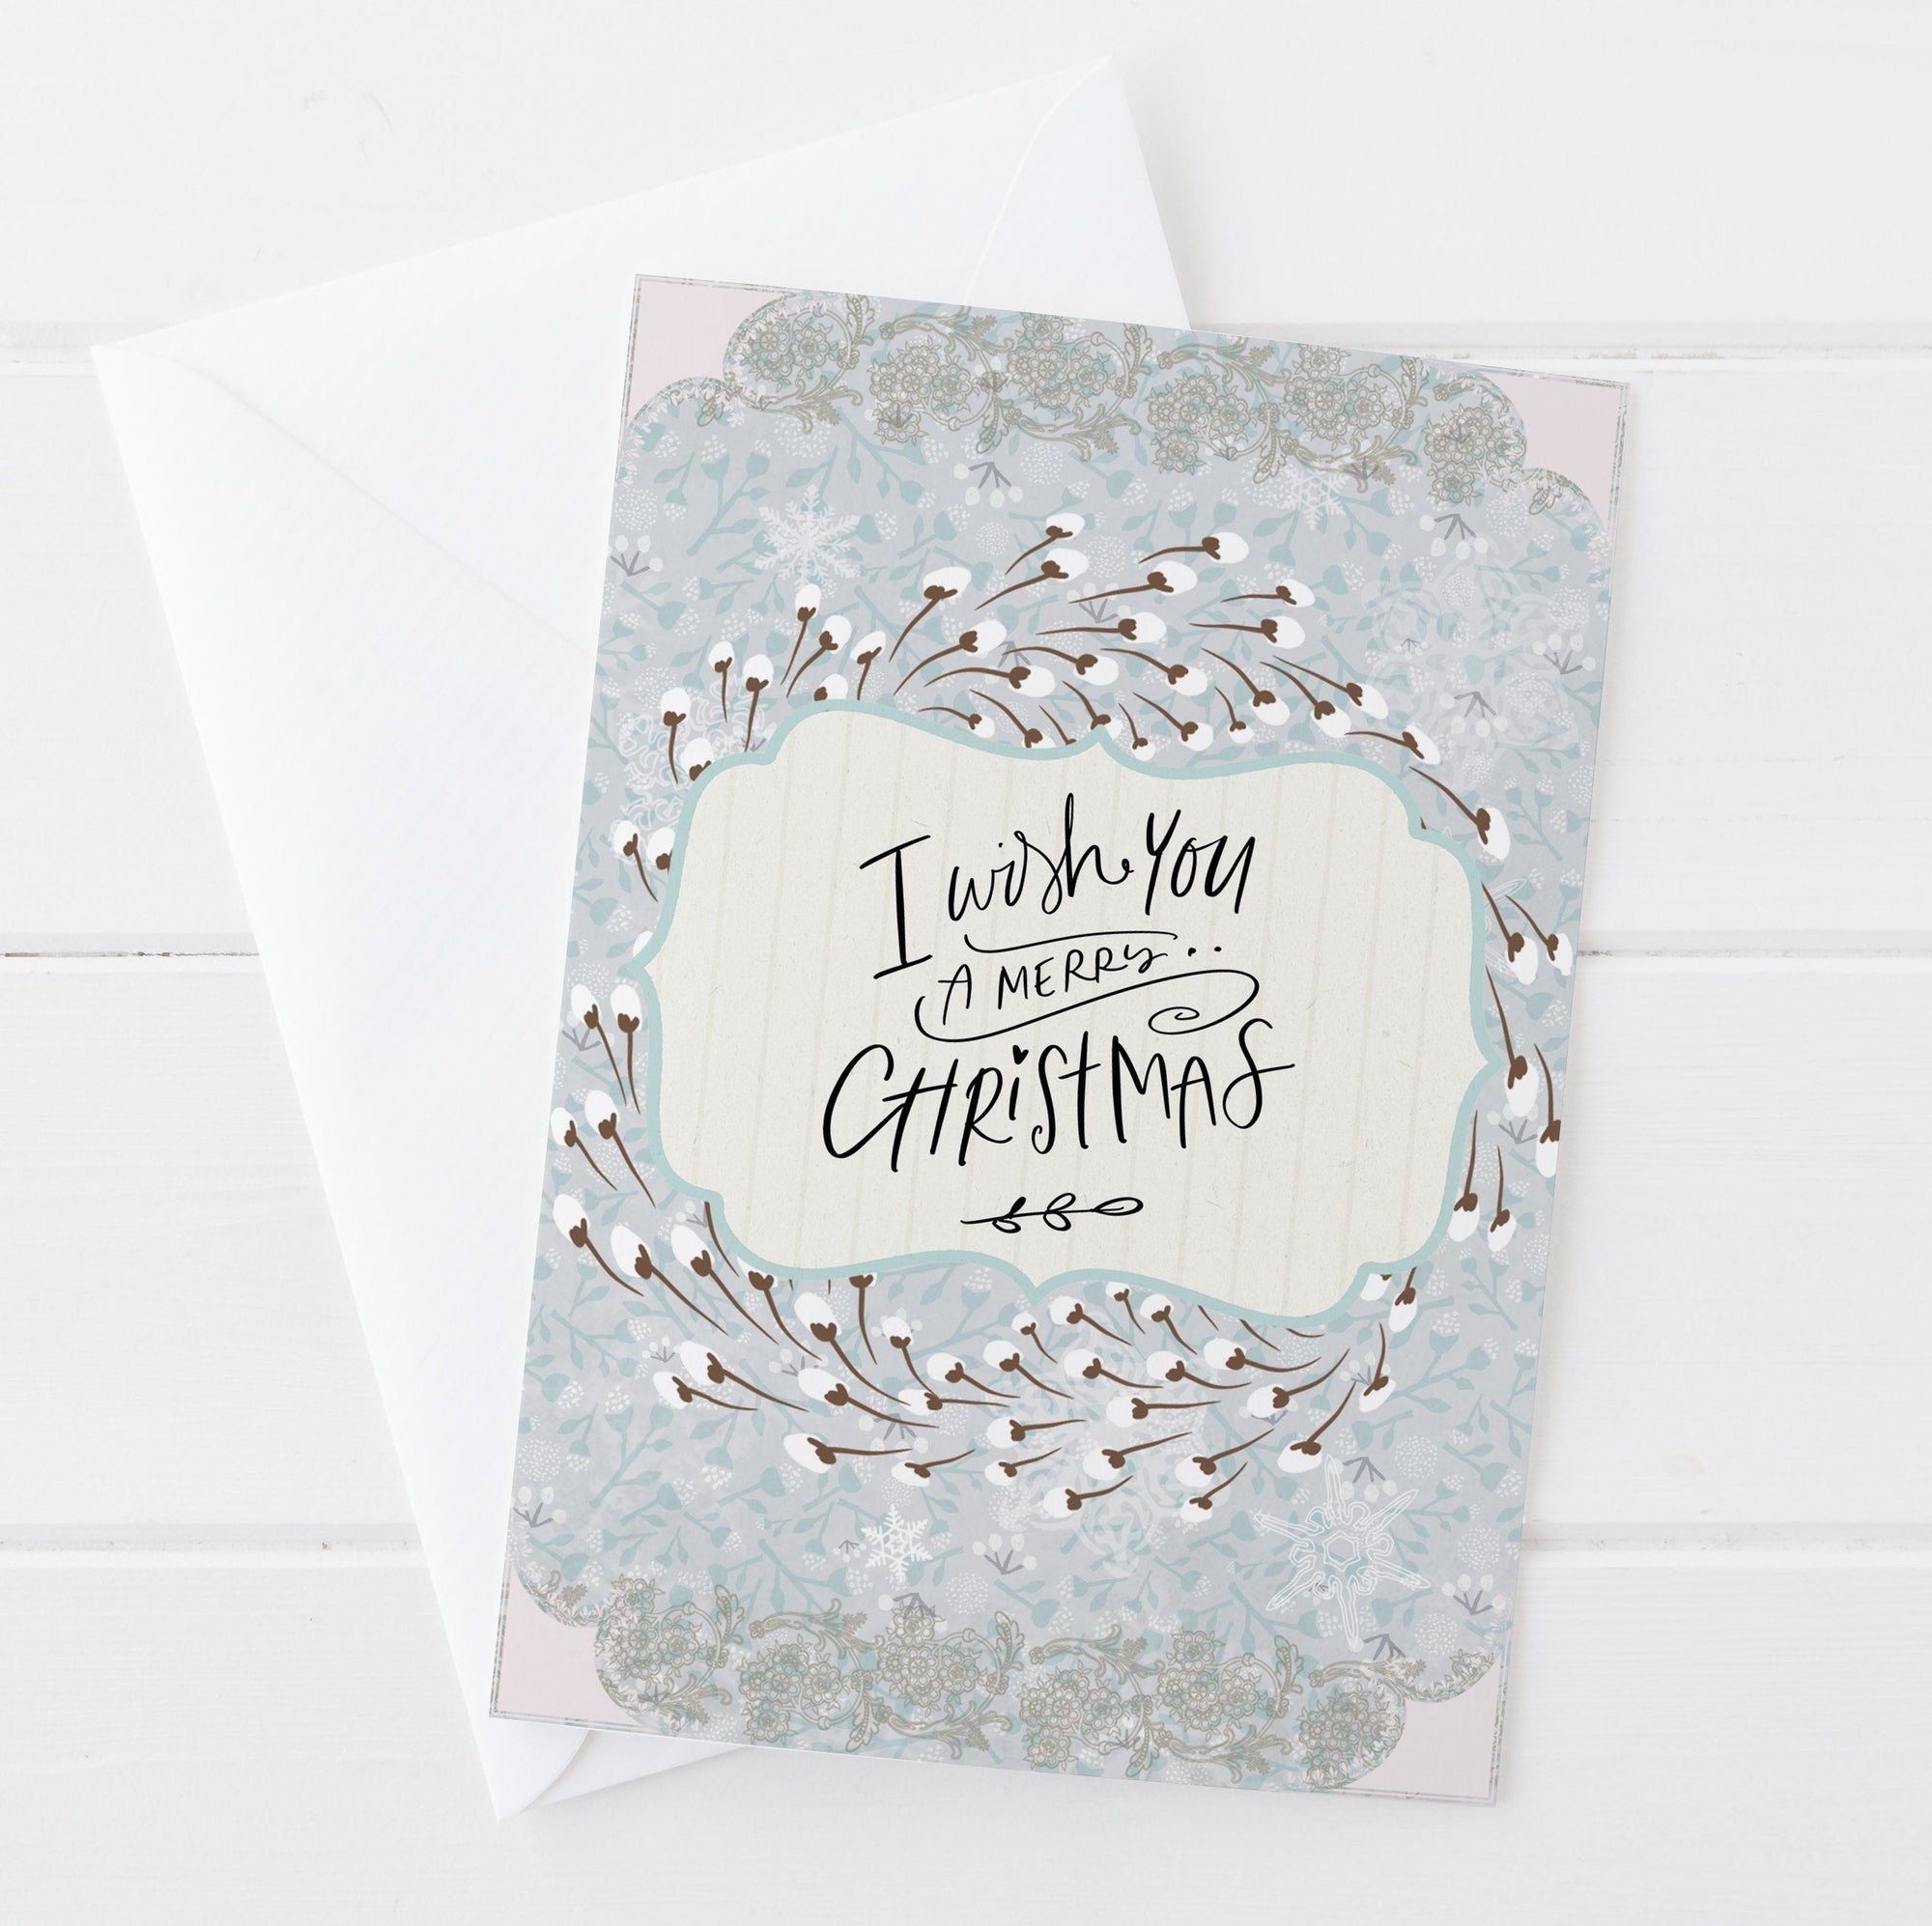 Merry Christmas wreath and Lace Christmas Card